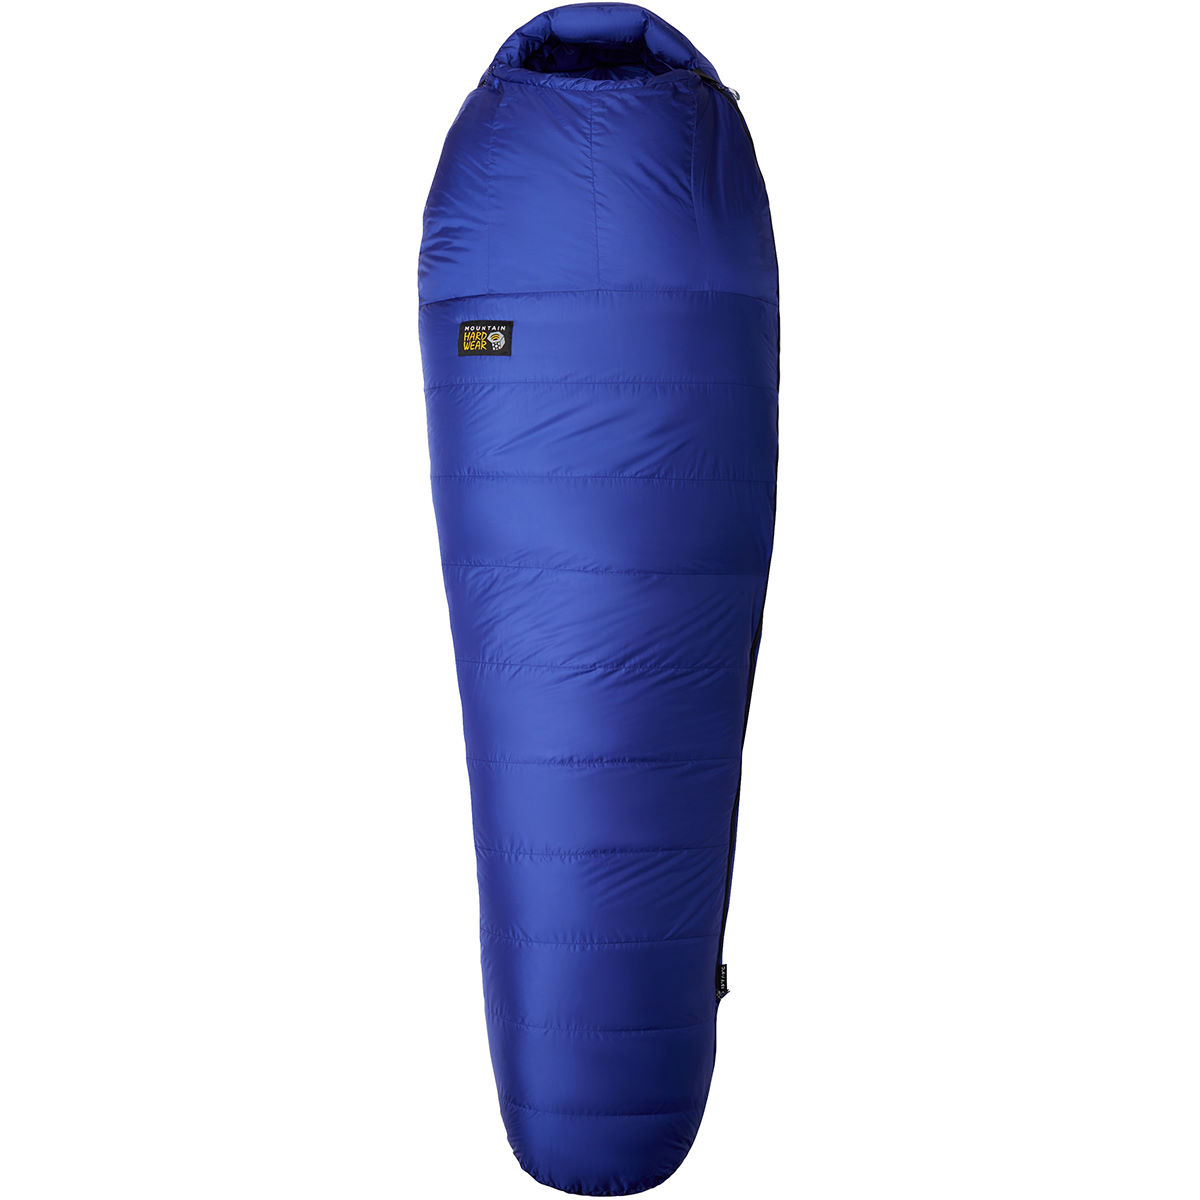 Mountain Hardwear Mountain Hardwear Rook™ 15F/-9C Reg Sleeping Bag   Sleeping Bags